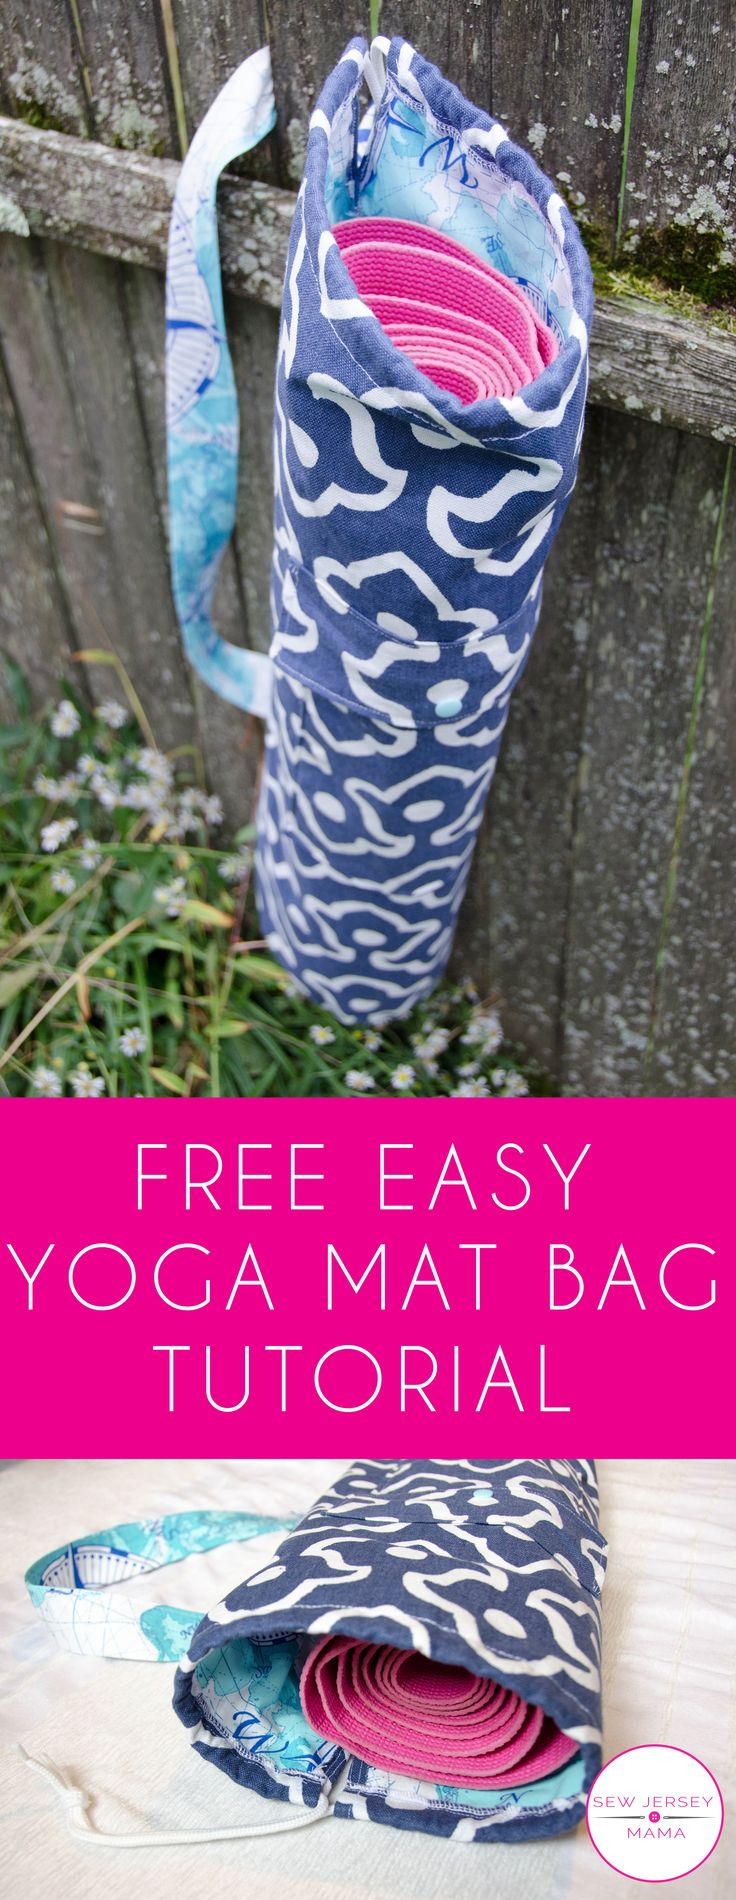 Free Yoga Mat Bag Tutorial | Easy Yoga Bag Tutorial | Sewing Tutorial | Yoga Mat Bag | Free Tutorial | Sew Jersey Mama